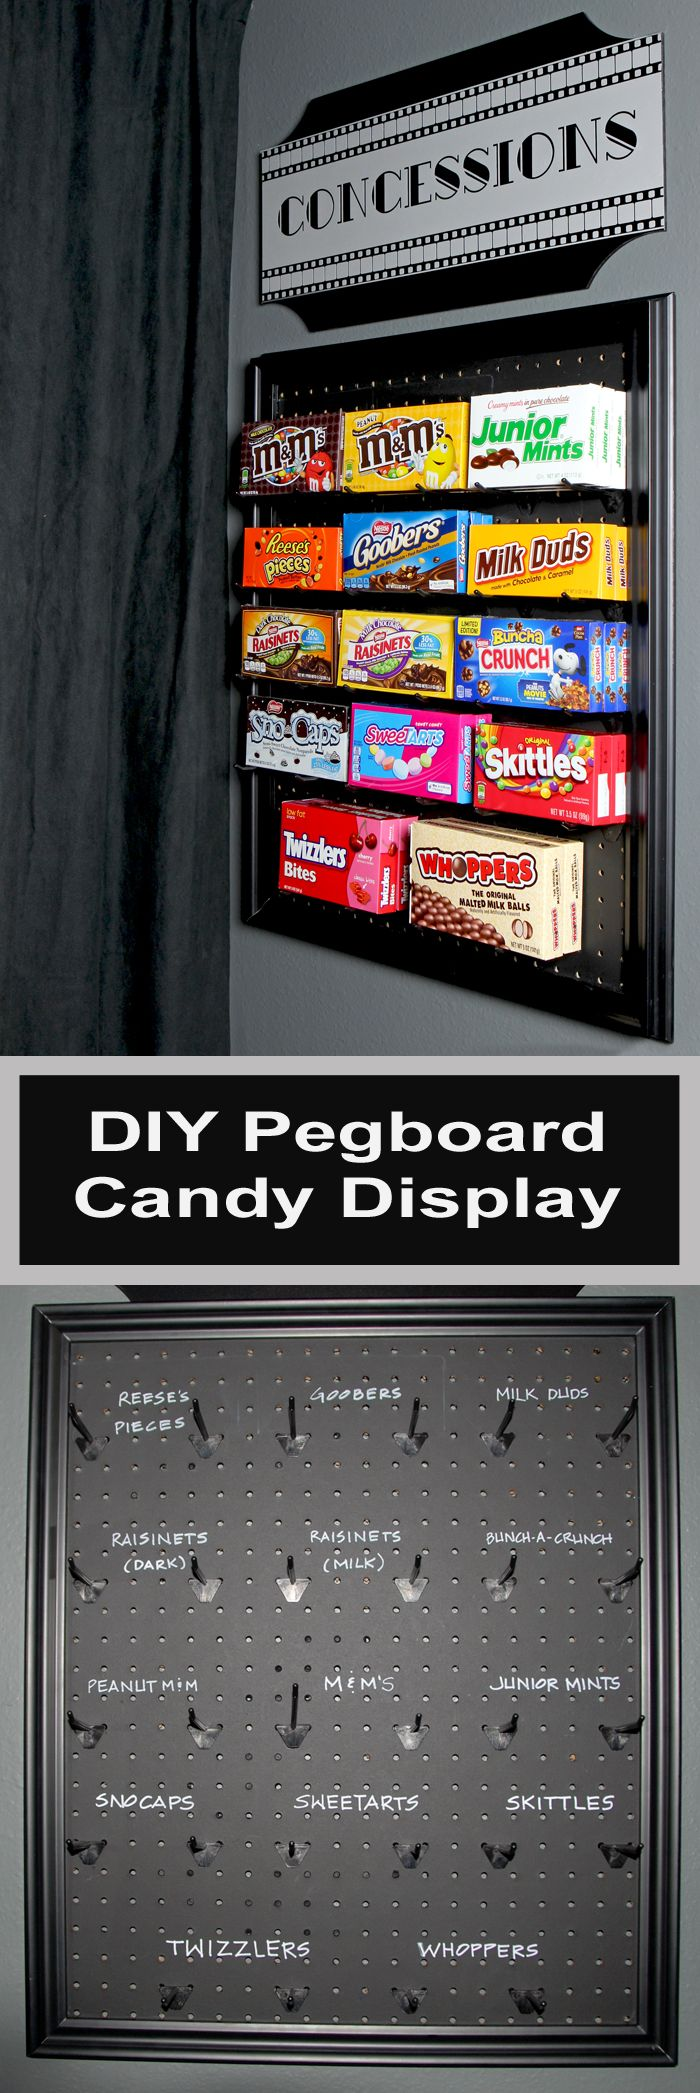 An Easy DIY Project Using Pegboard And Chalkboard Paint To Make A Fun  Display For Candy